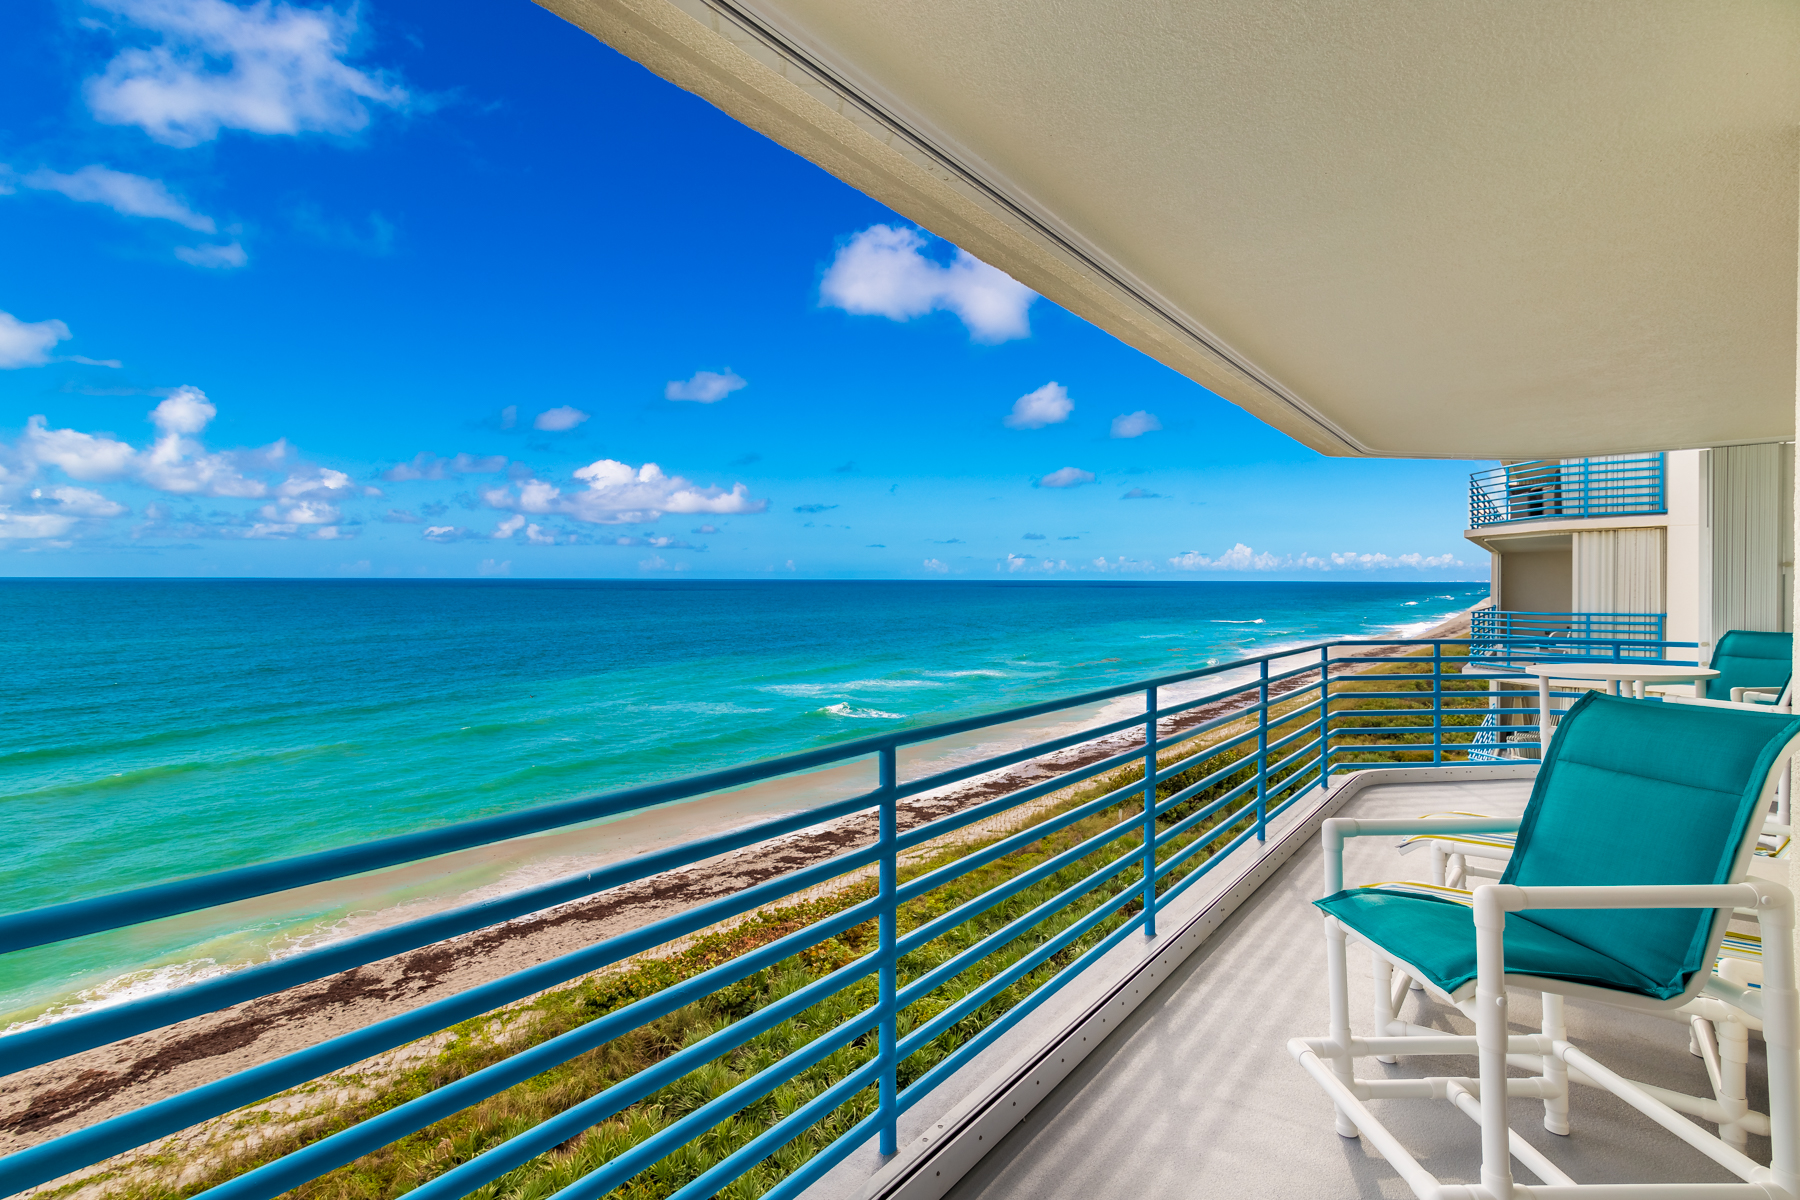 Property for Sale at Gorgeous Oceanfront 6th Floor Villa in Monaco 579 Highway A1A #602 Satellite Beach, Florida 32937 United States